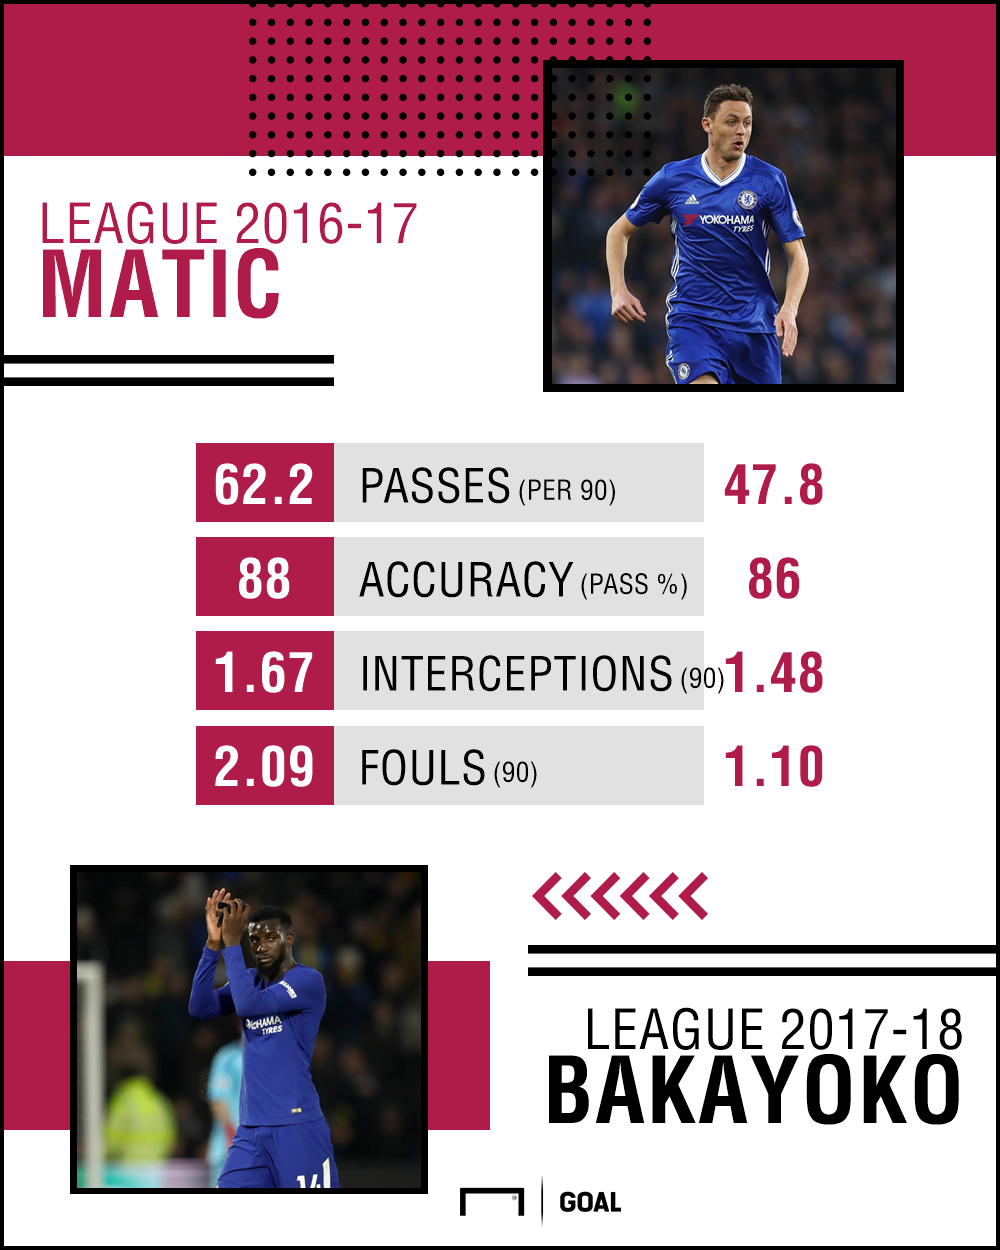 https://images.performgroup.com/di/library/GOAL/19/4/matic-bakayoko-comparison_3rapc7p246ss1pdiyb7q2tv1y.png